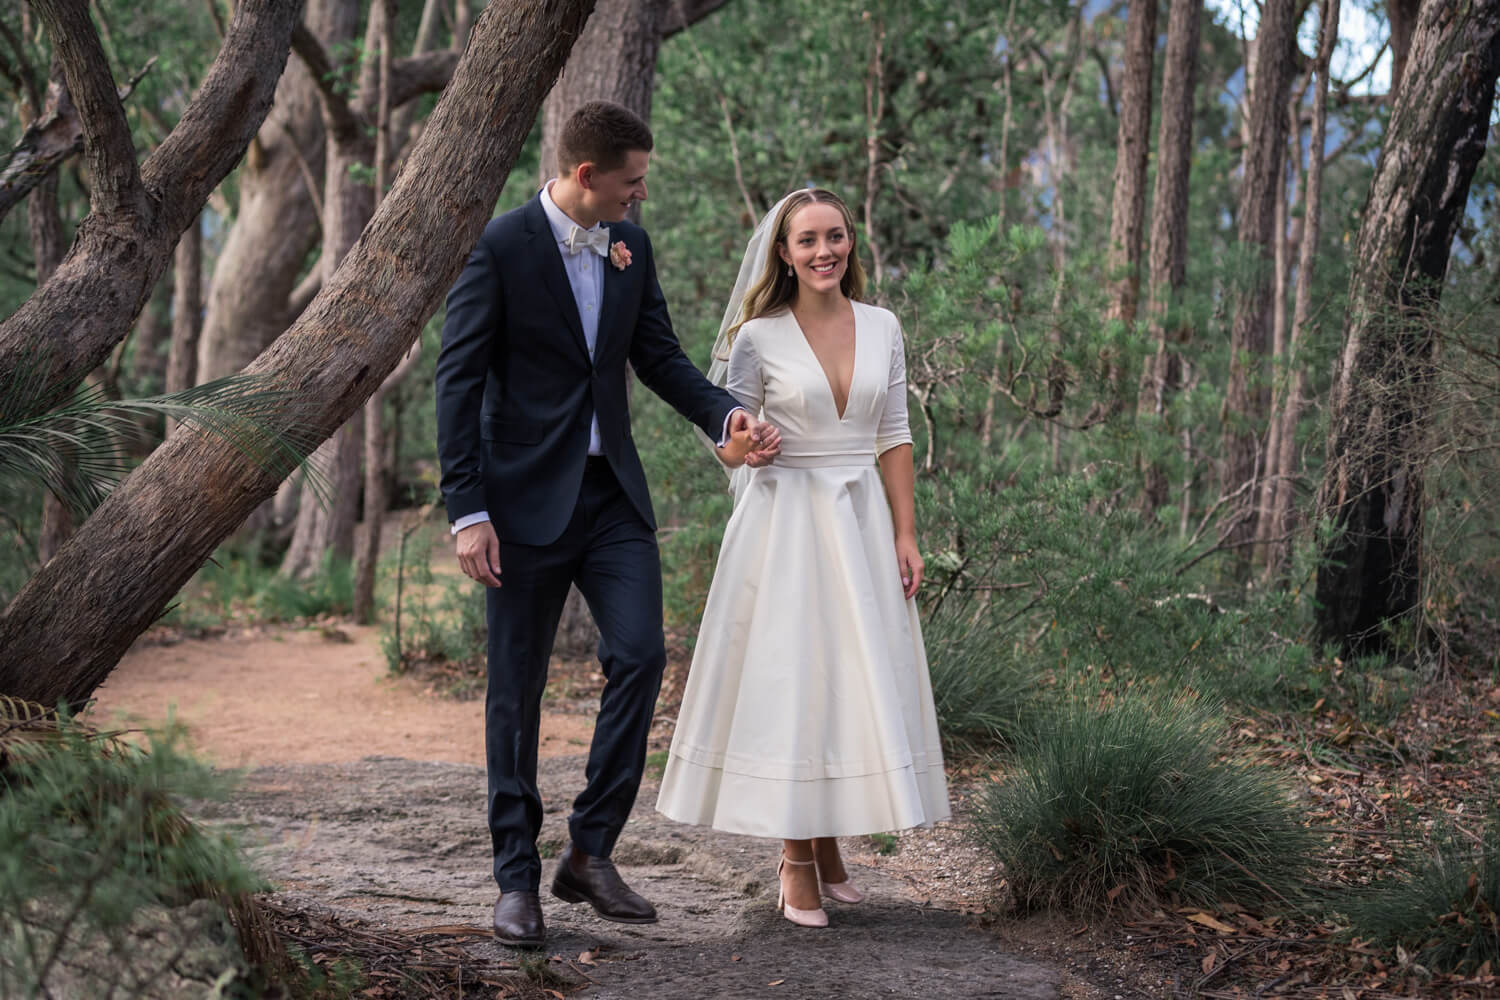 bride and groom holding hands in the forest - wedding photography styles